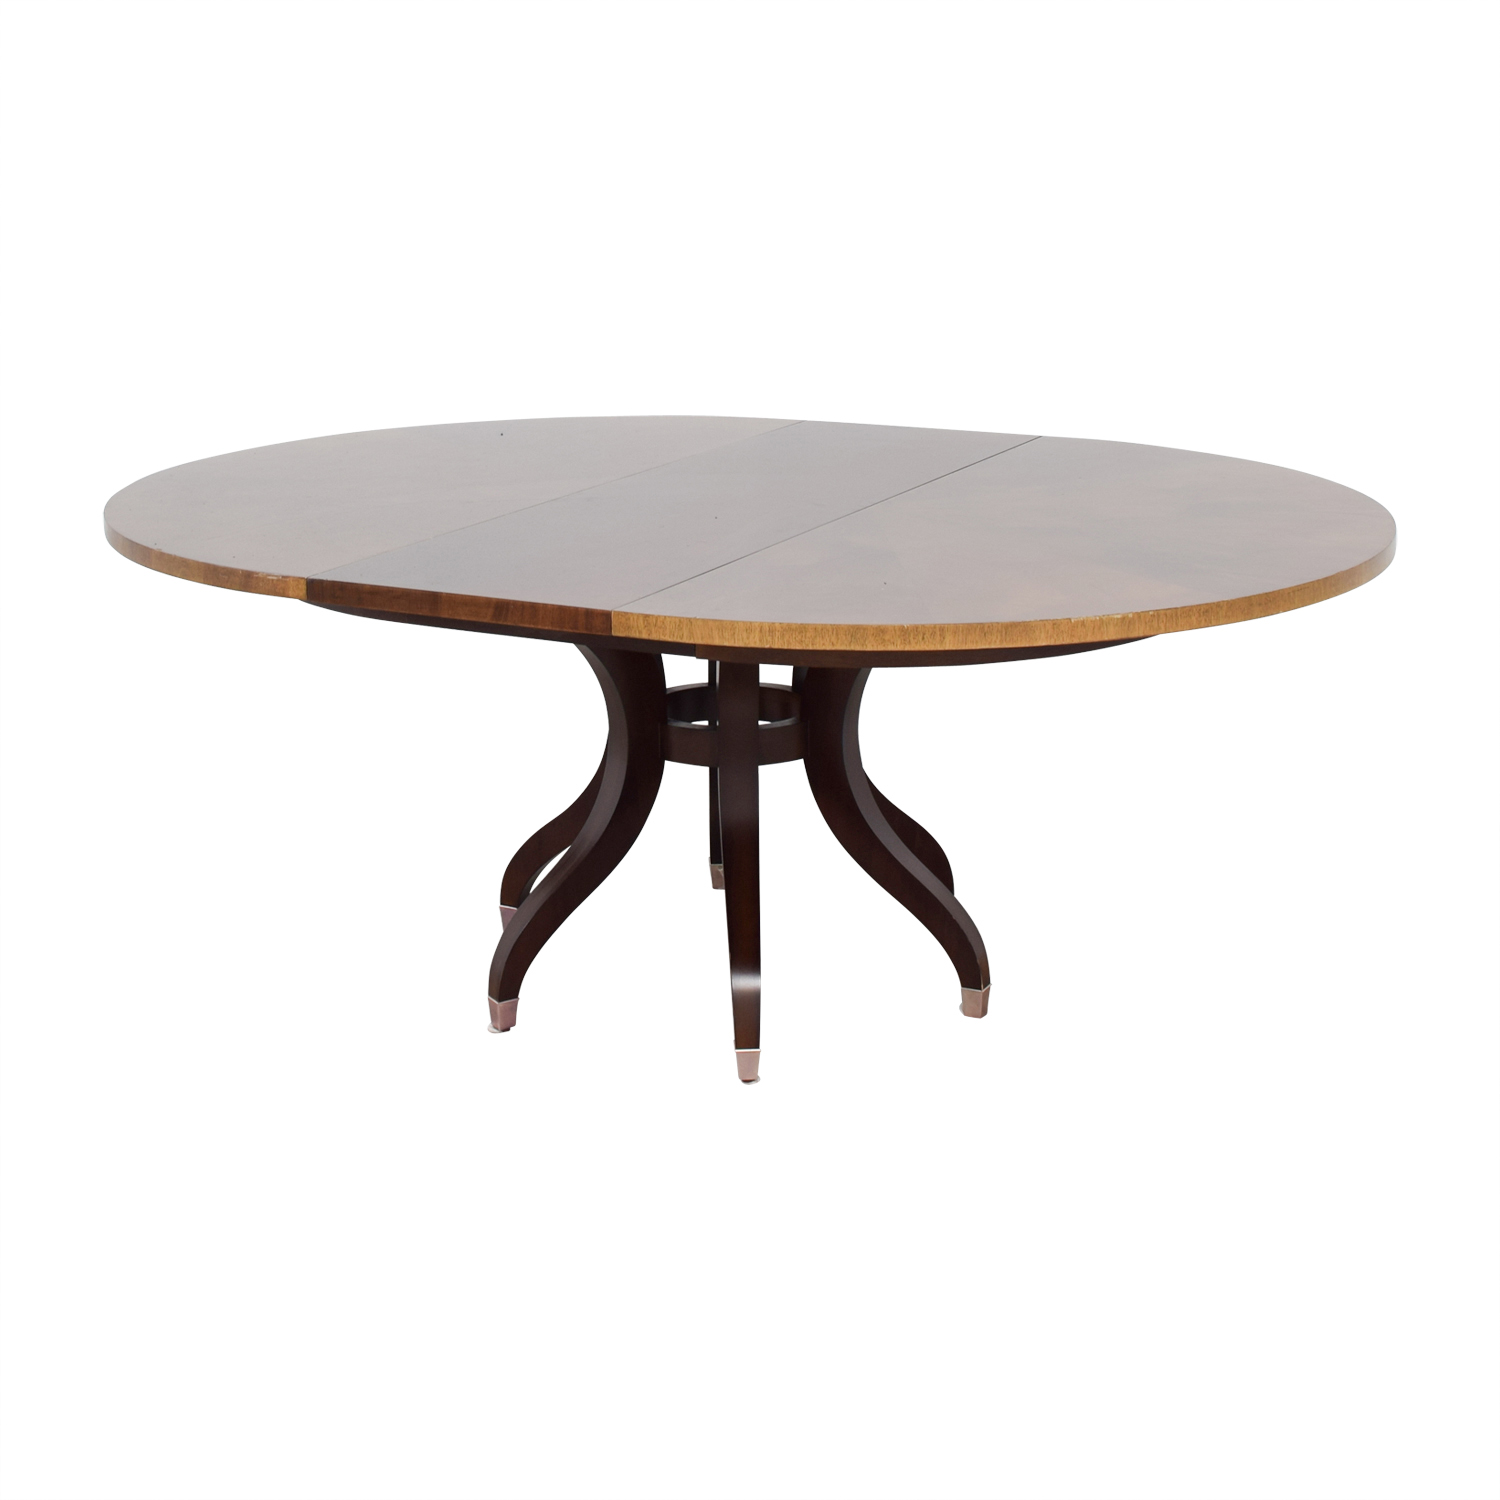 90 Off Ethan Allen Ethan Allen Ashcroft Dining Table